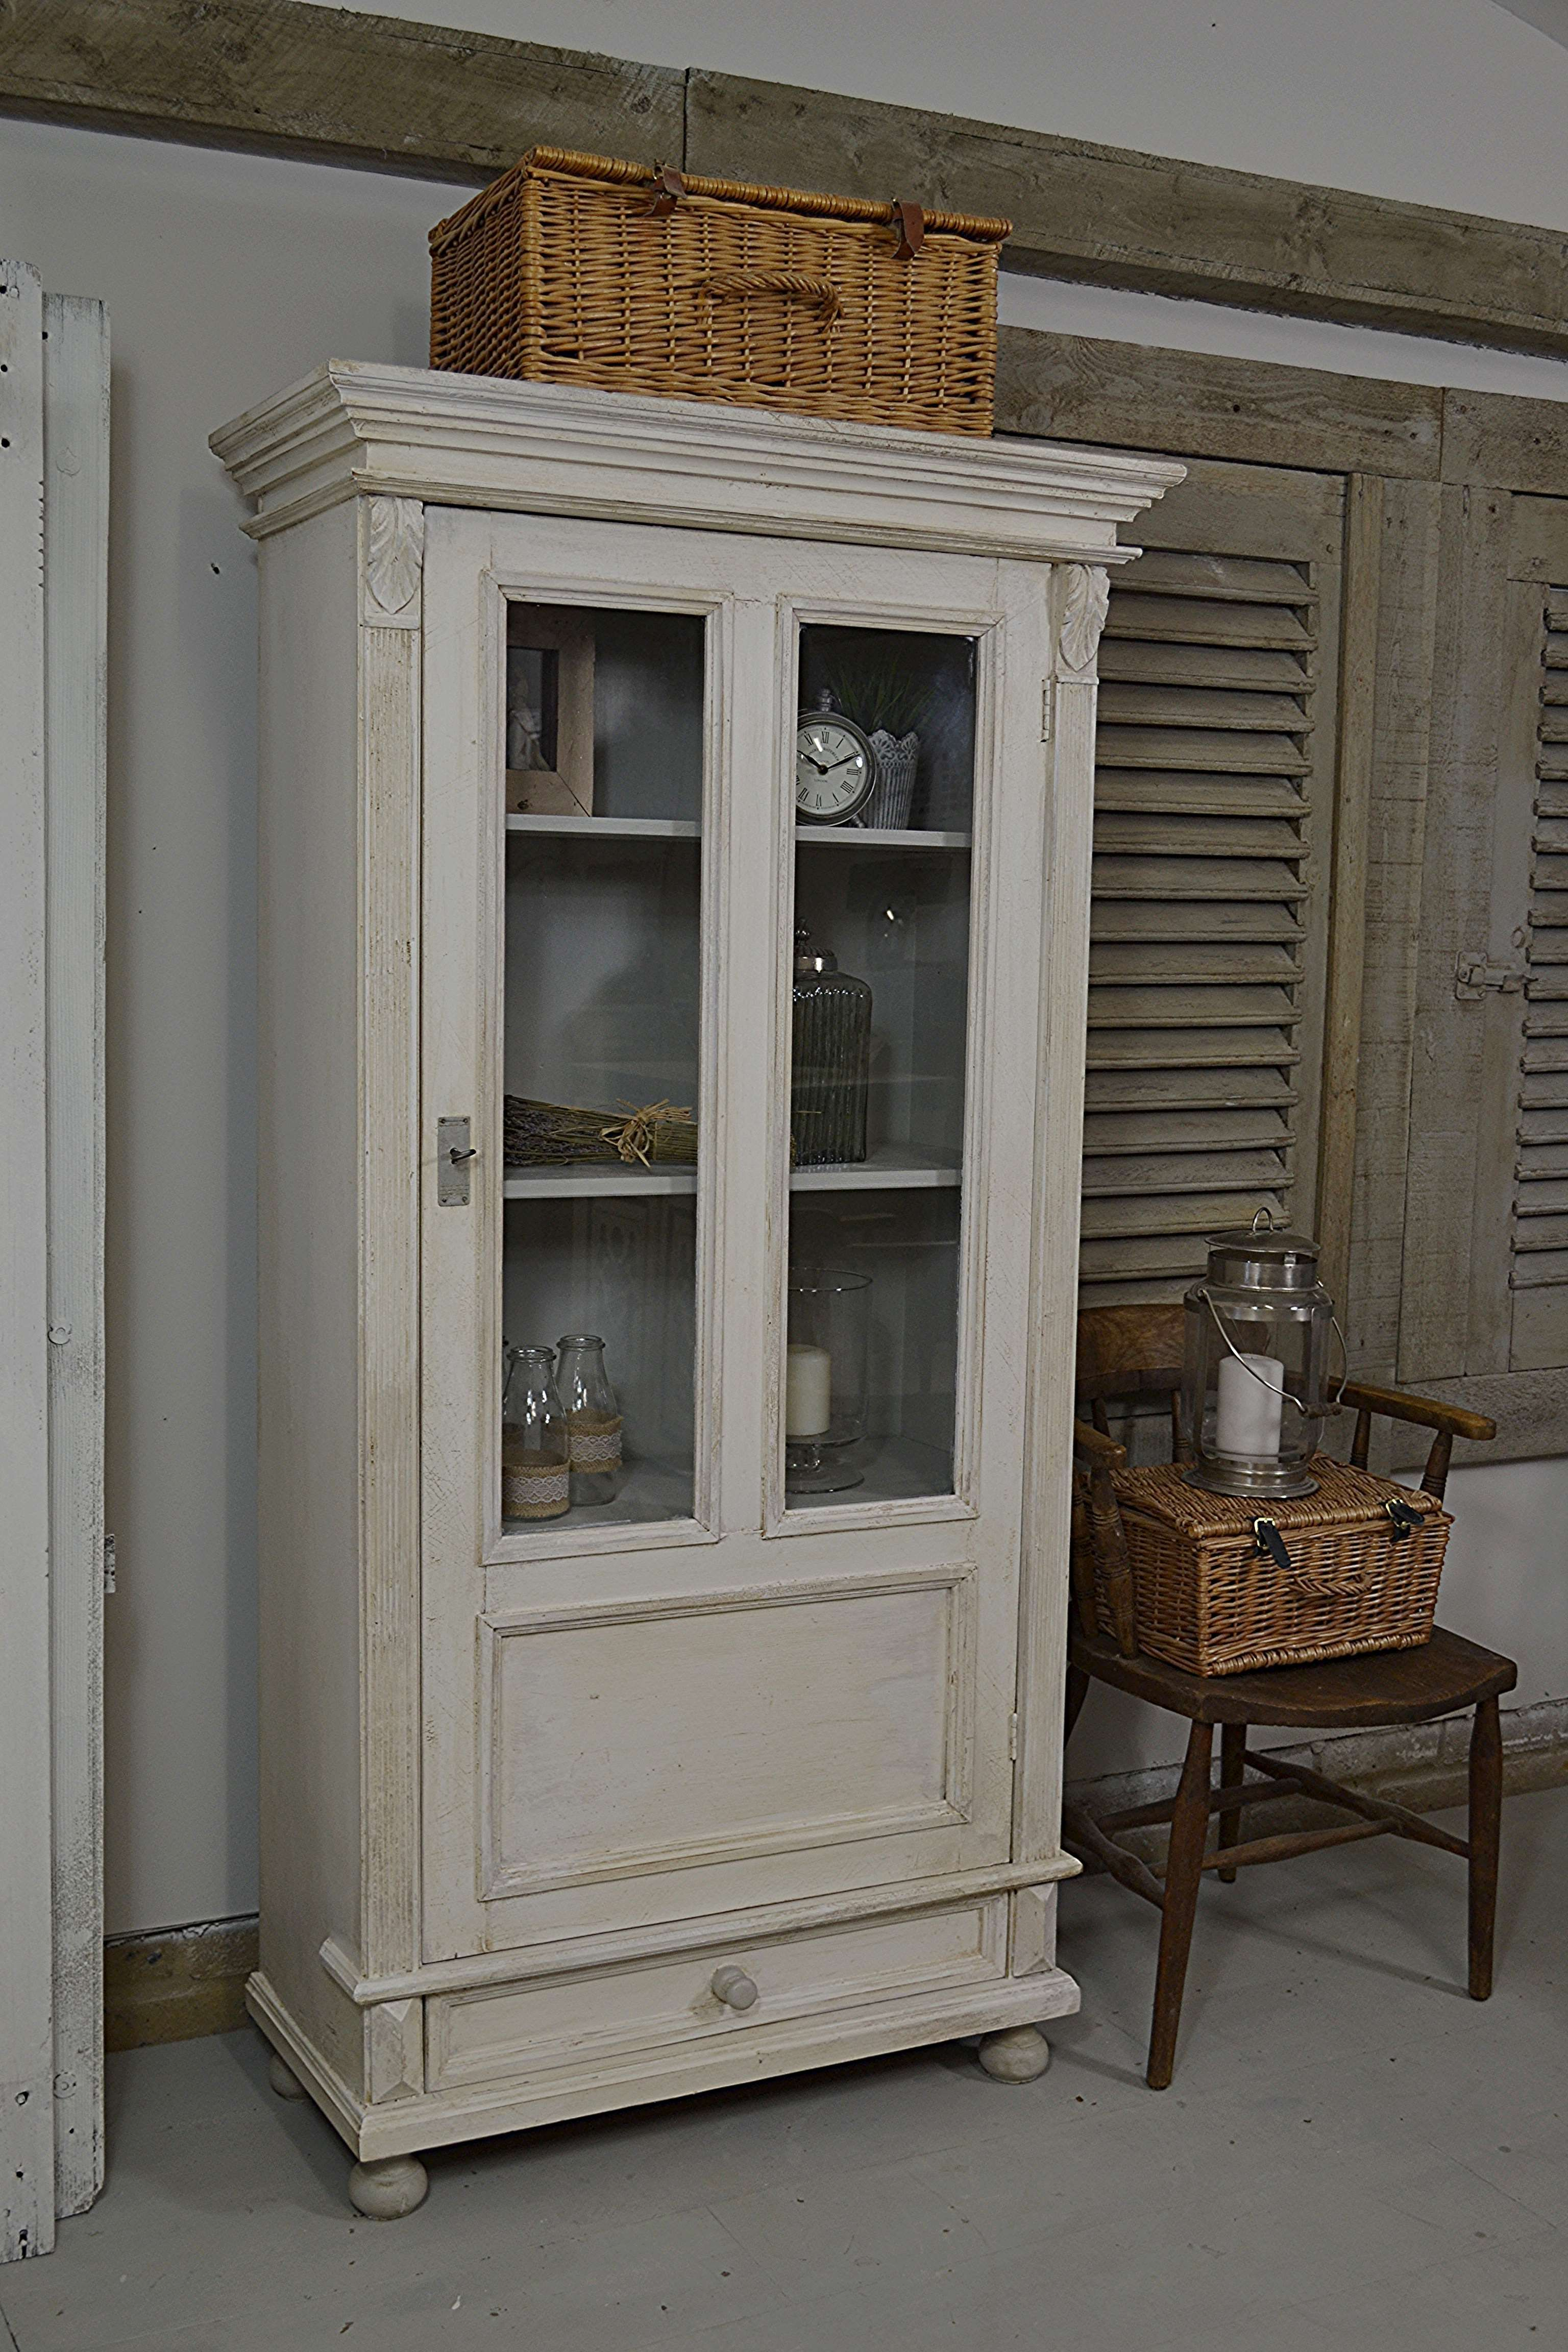 Kitchen Alcove This Small Glass Fronted Dutch Linen Cupboard Is Perfect For A